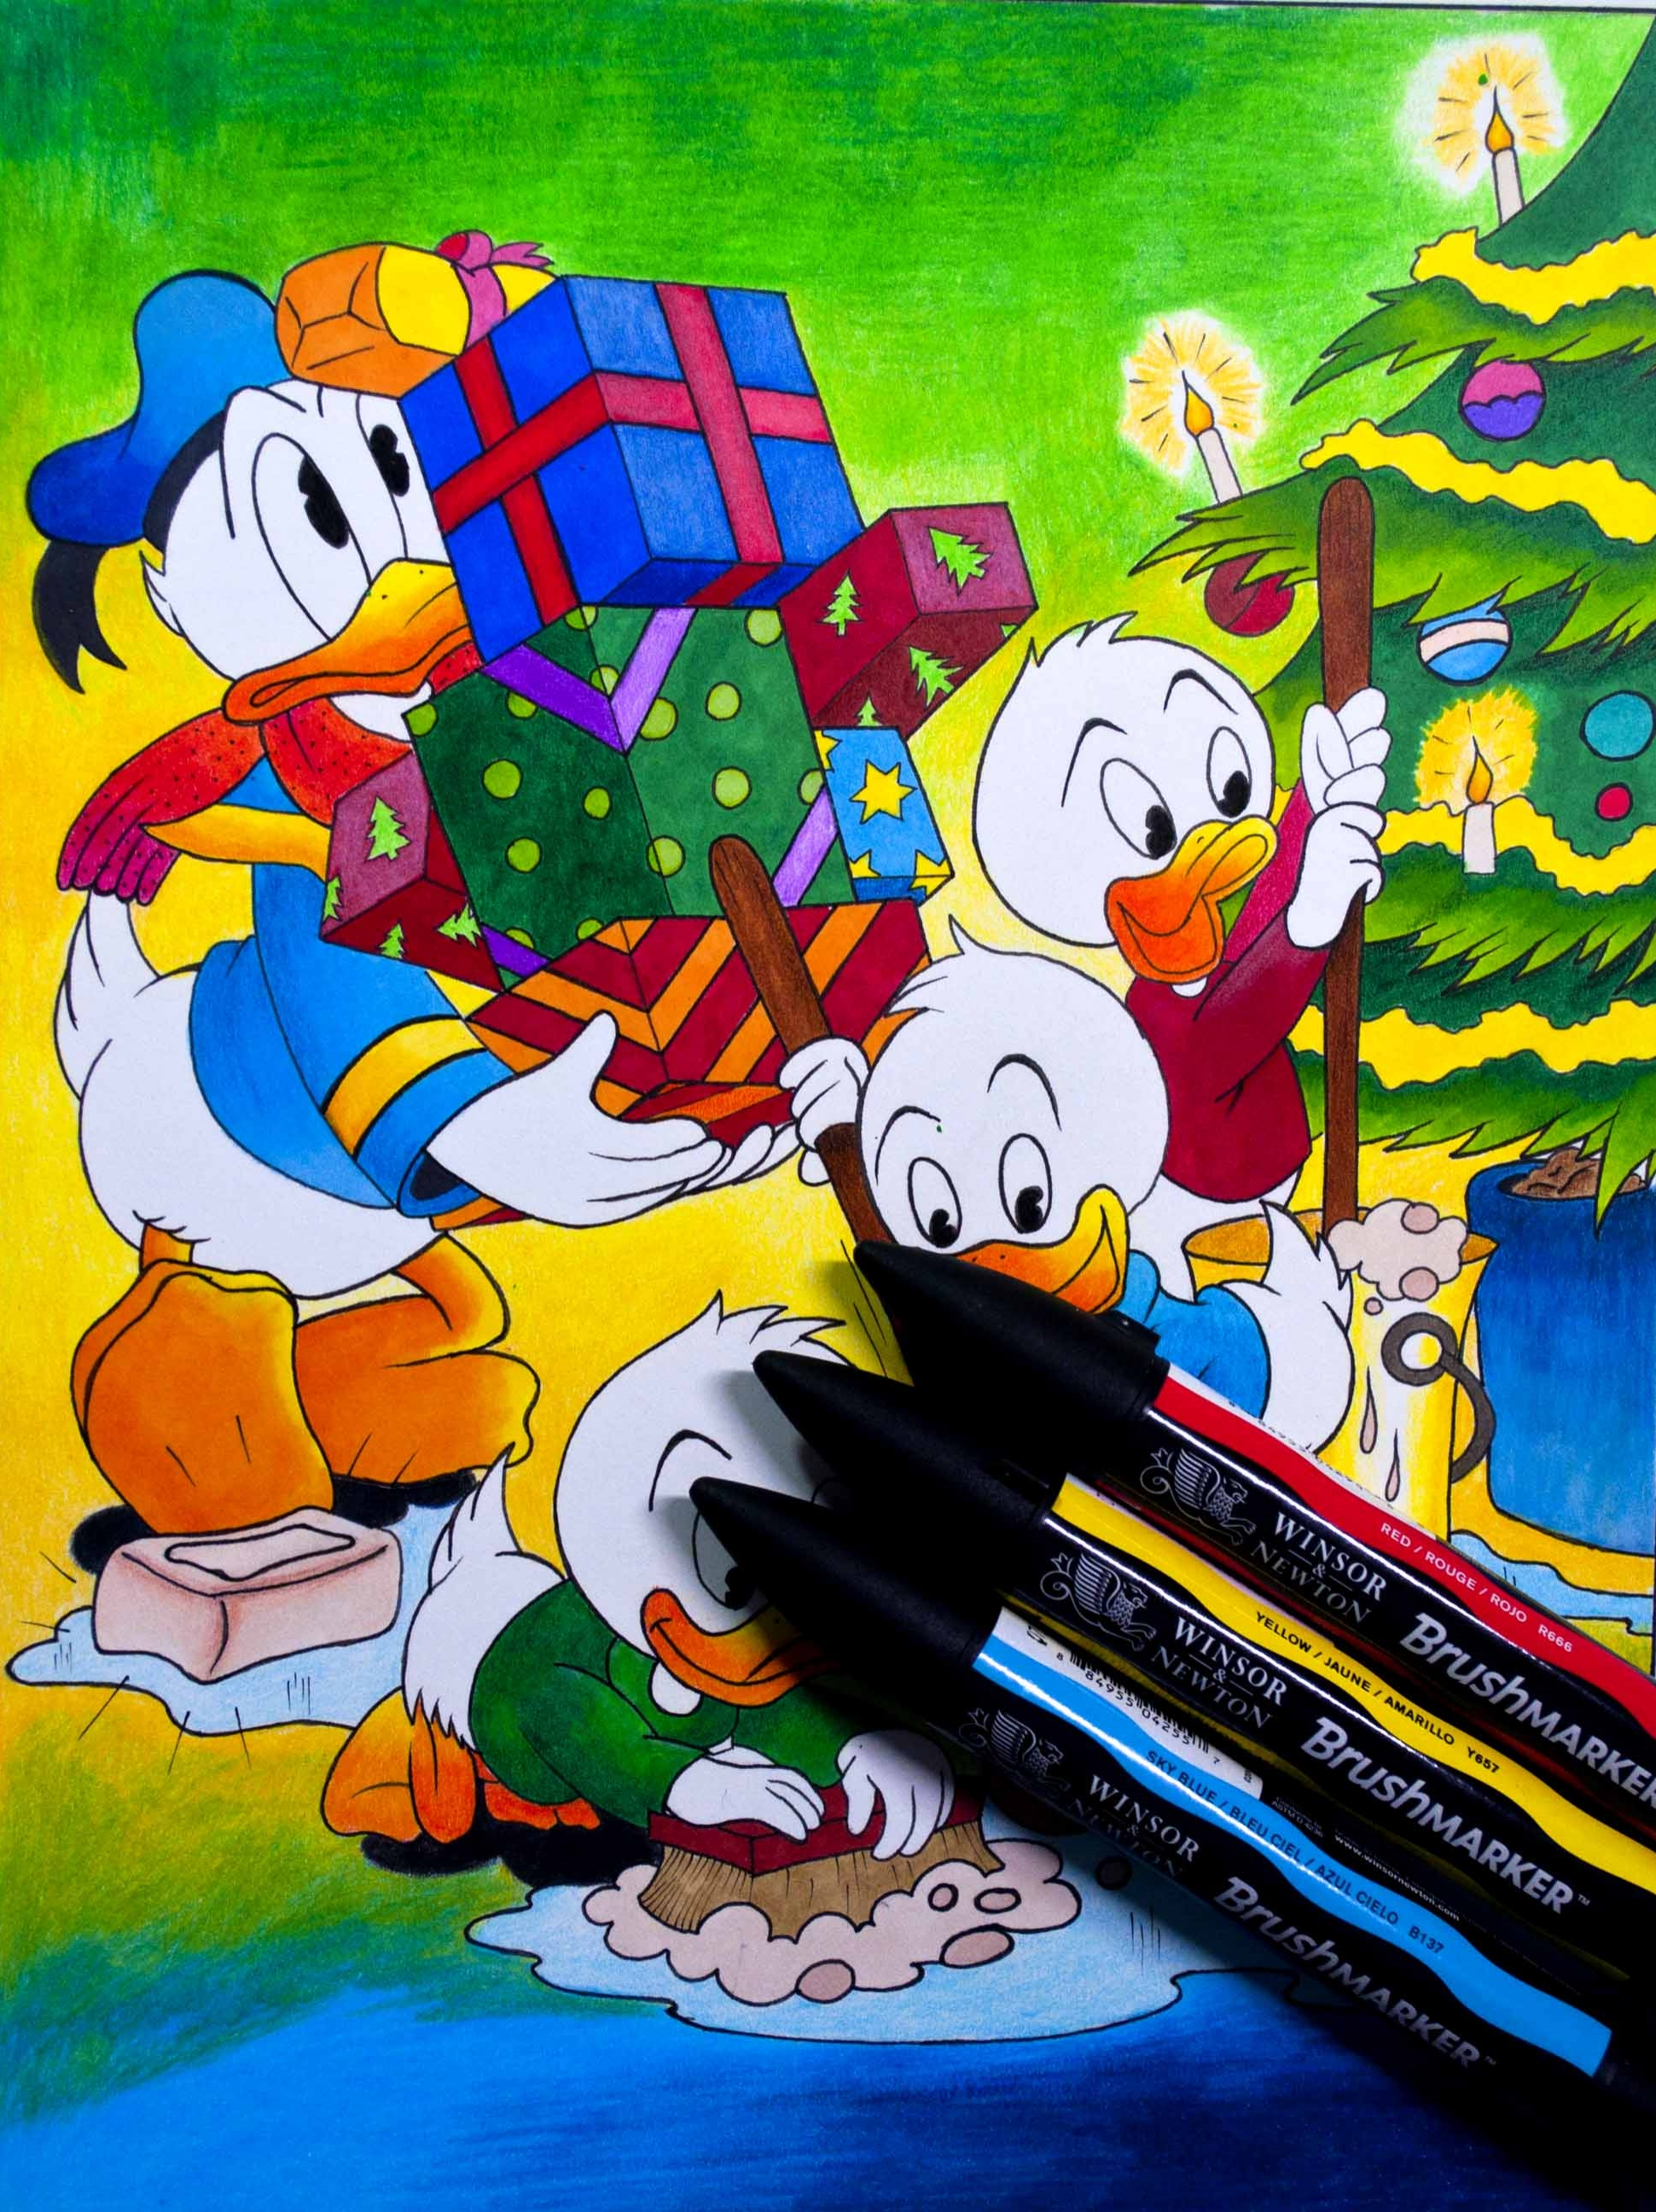 Donald duck Final Image with markers.jpg